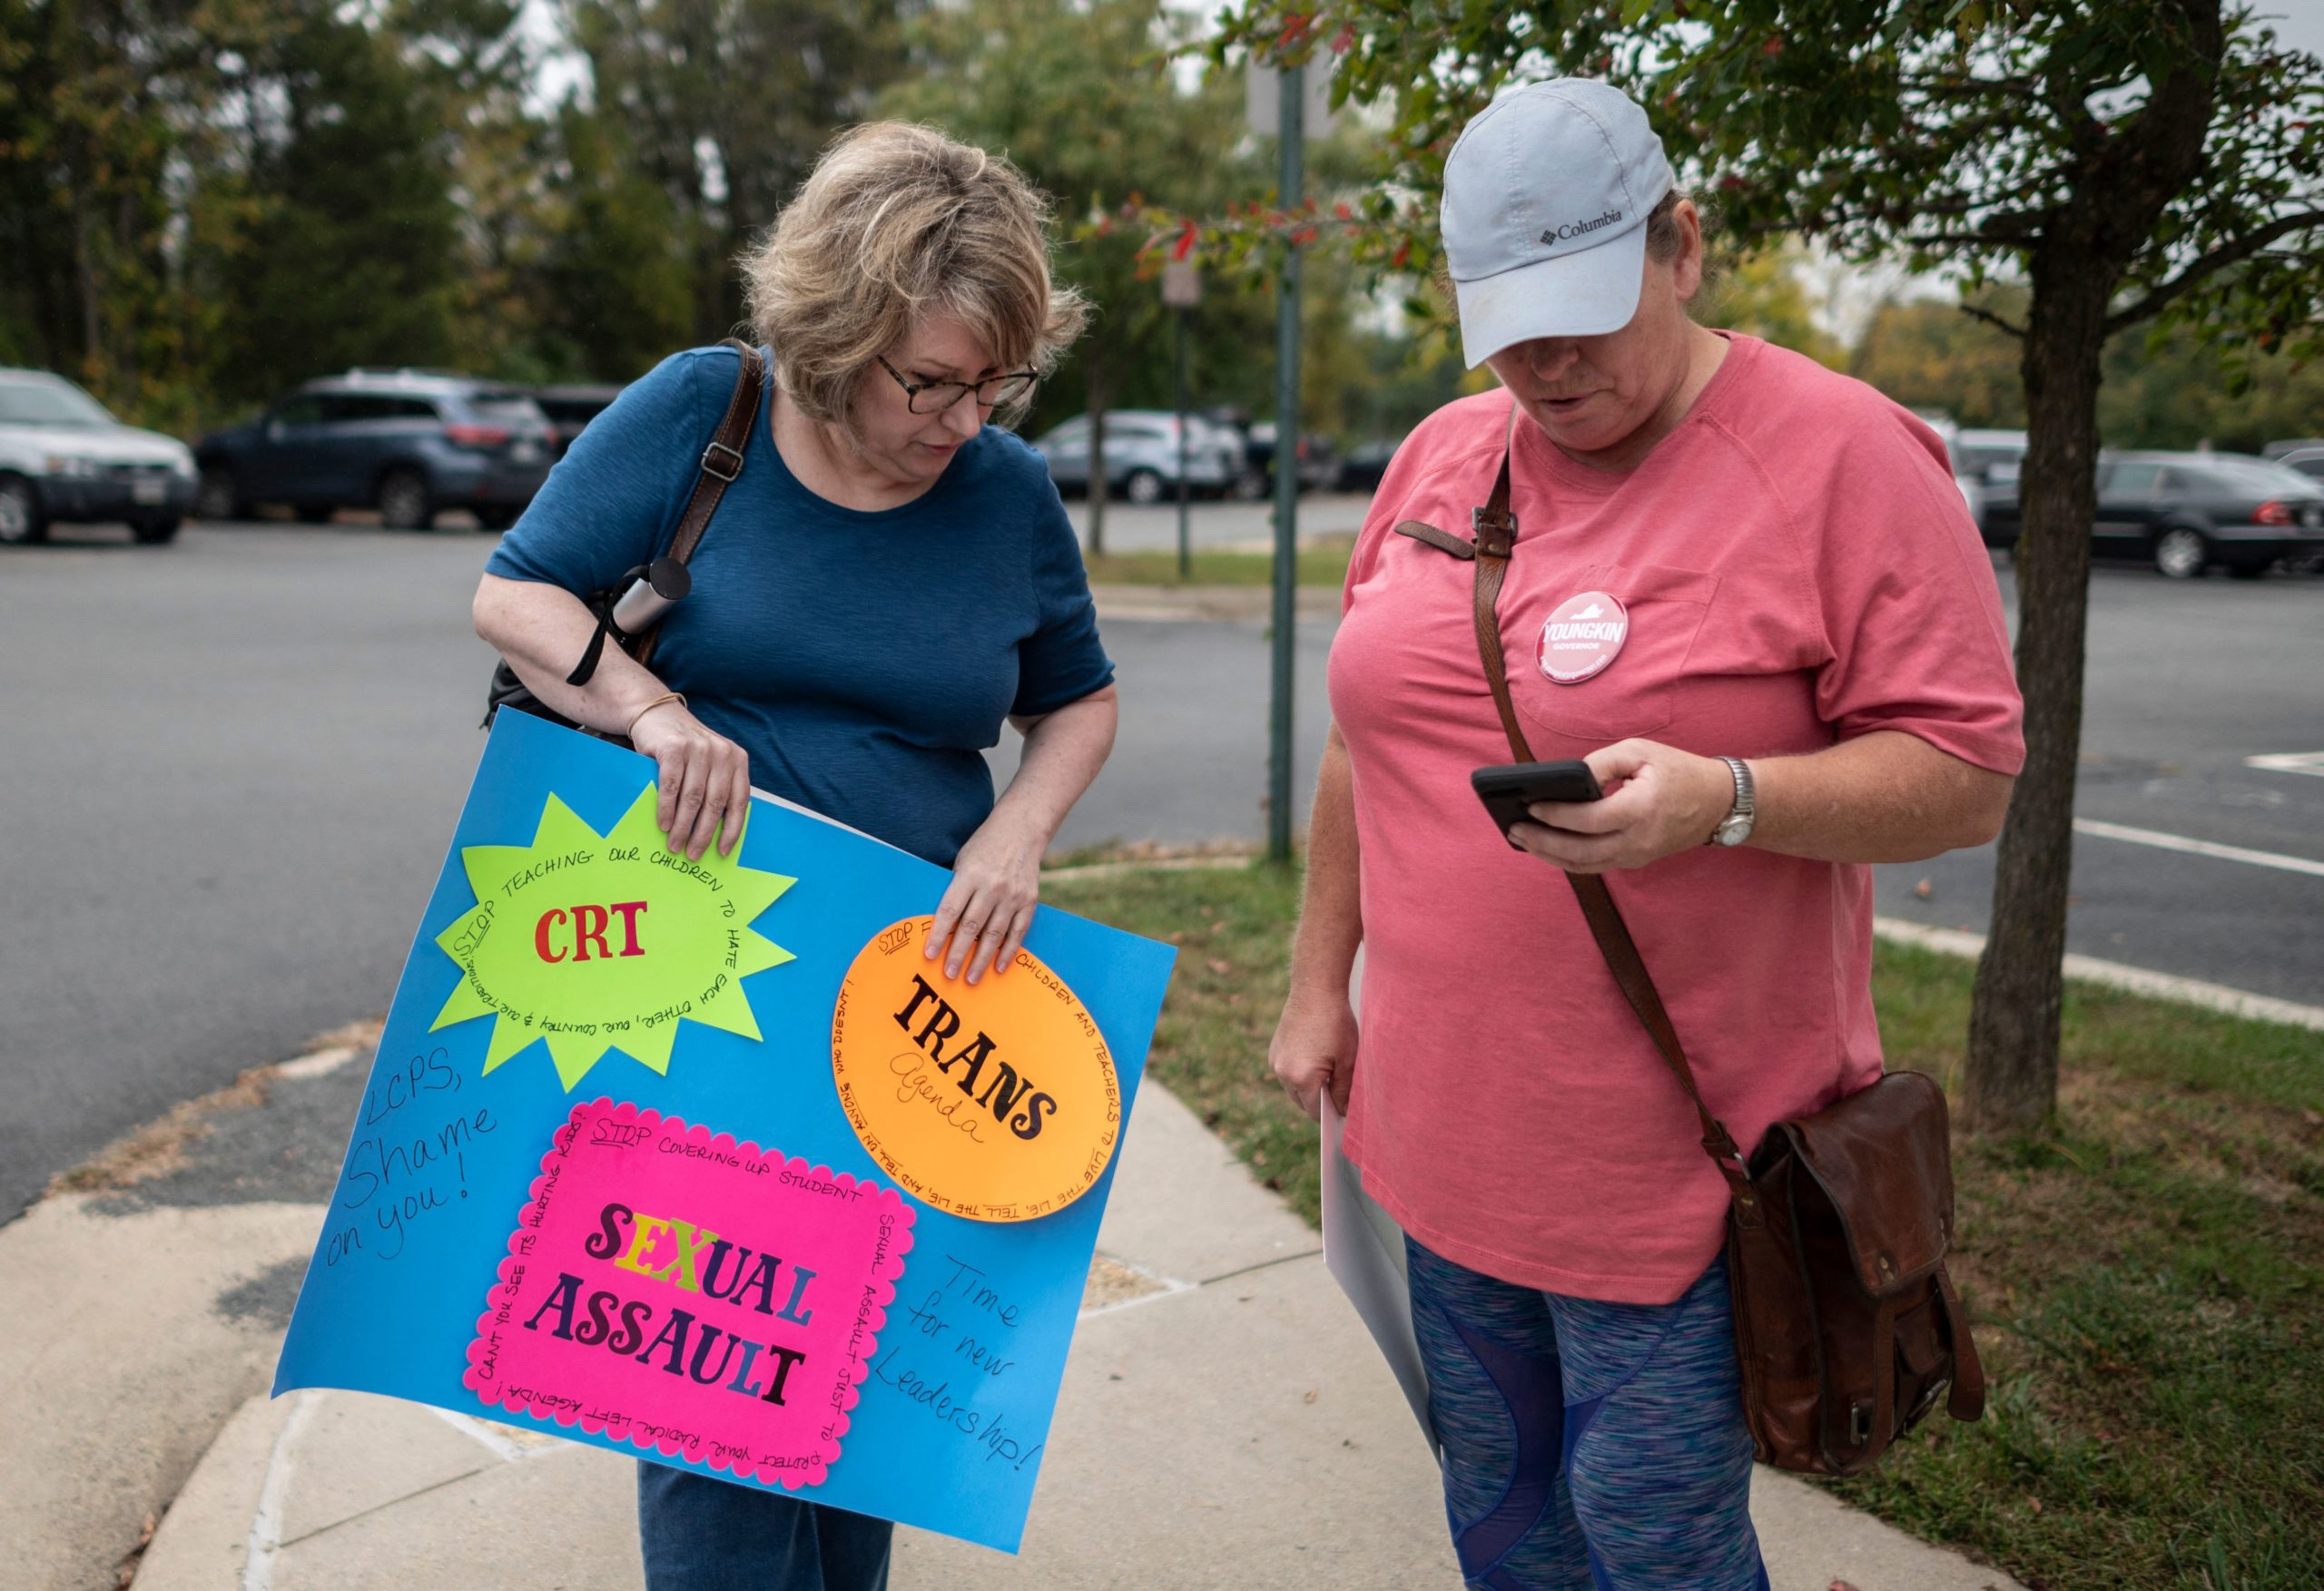 Protesters and activists stand outside a Loudoun County Public Schools (LCPS) board meeting in Ashburn, Virginia on October 12, 2021. (Photo by ANDREW CABALLERO-REYNOLDS/AFP via Getty Images)